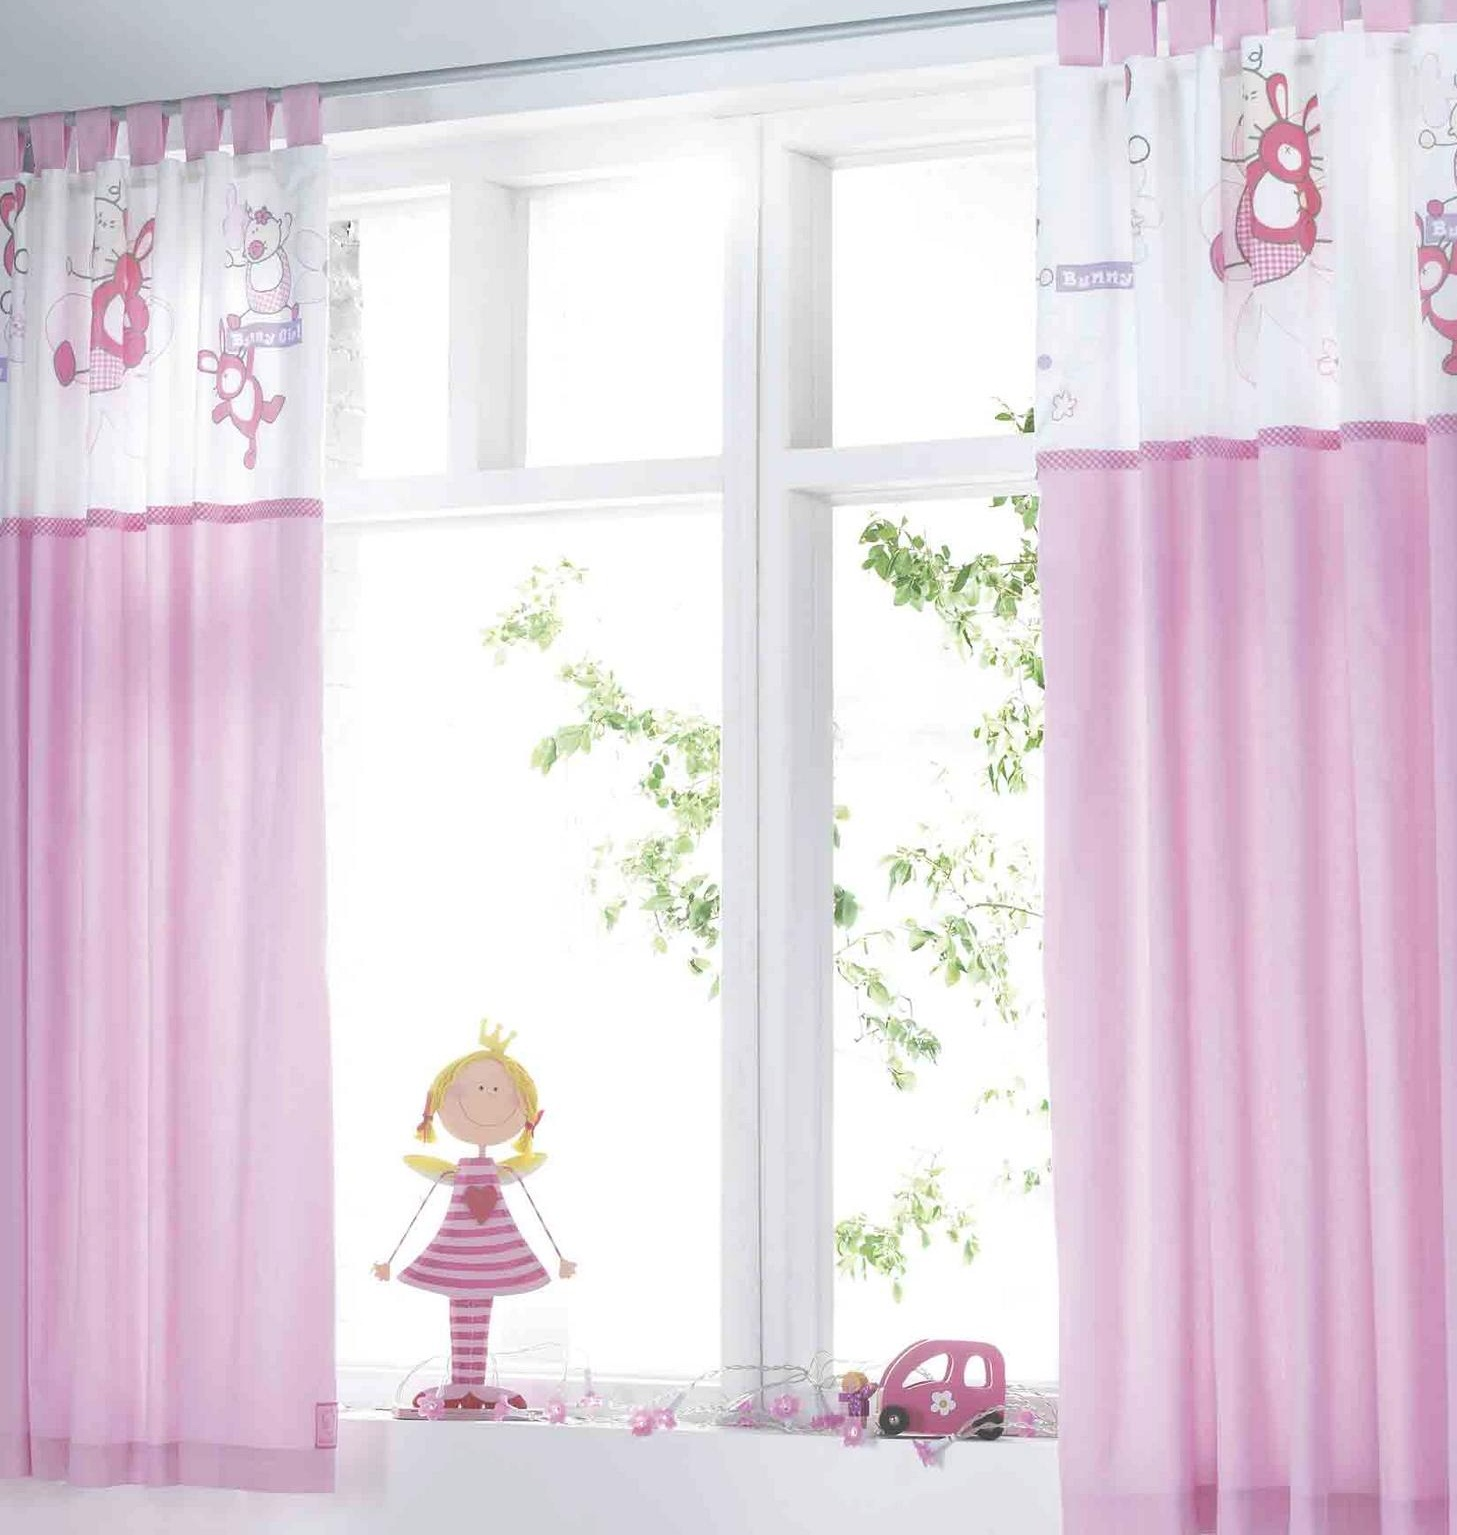 Pink Short Bedroom Window Curtains For Teenagers Girls Photos 10 Small Room Decorating Ideas